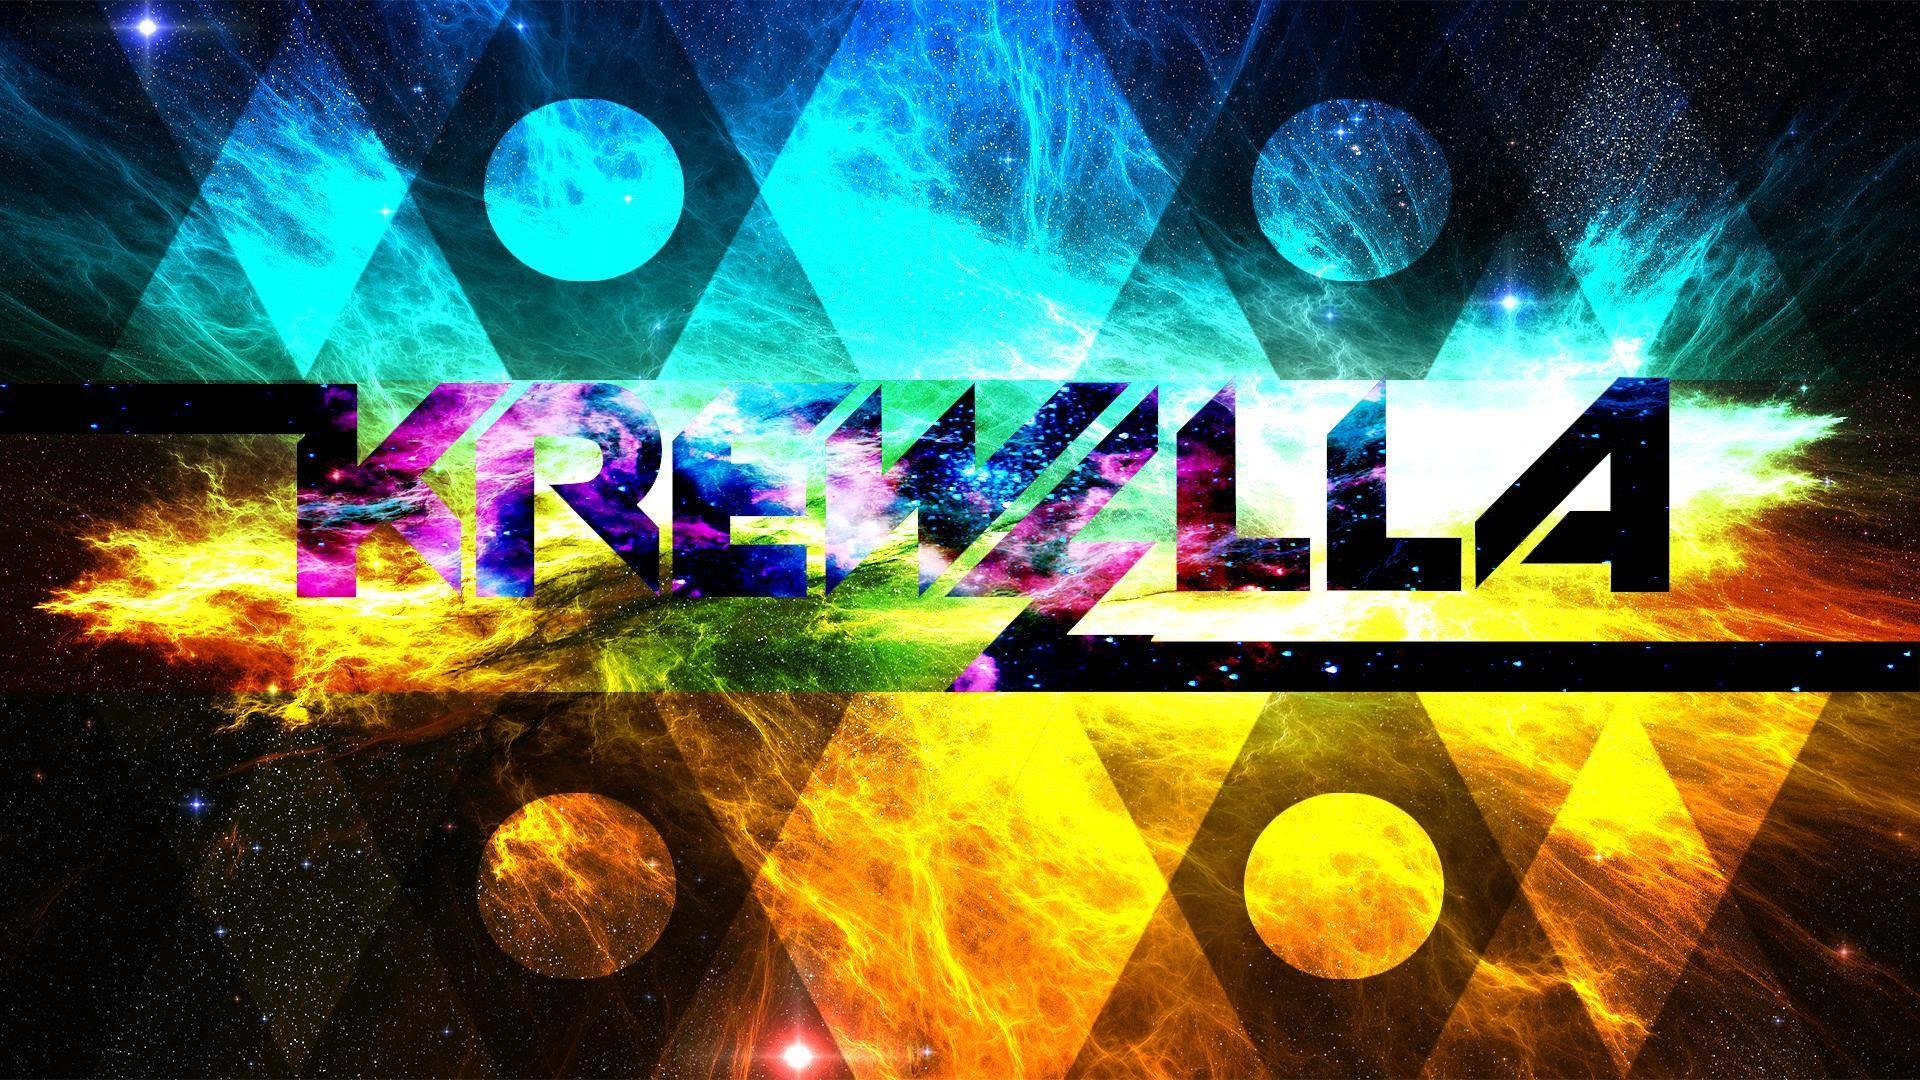 krewella images so cool logo HD wallpaper and background photos